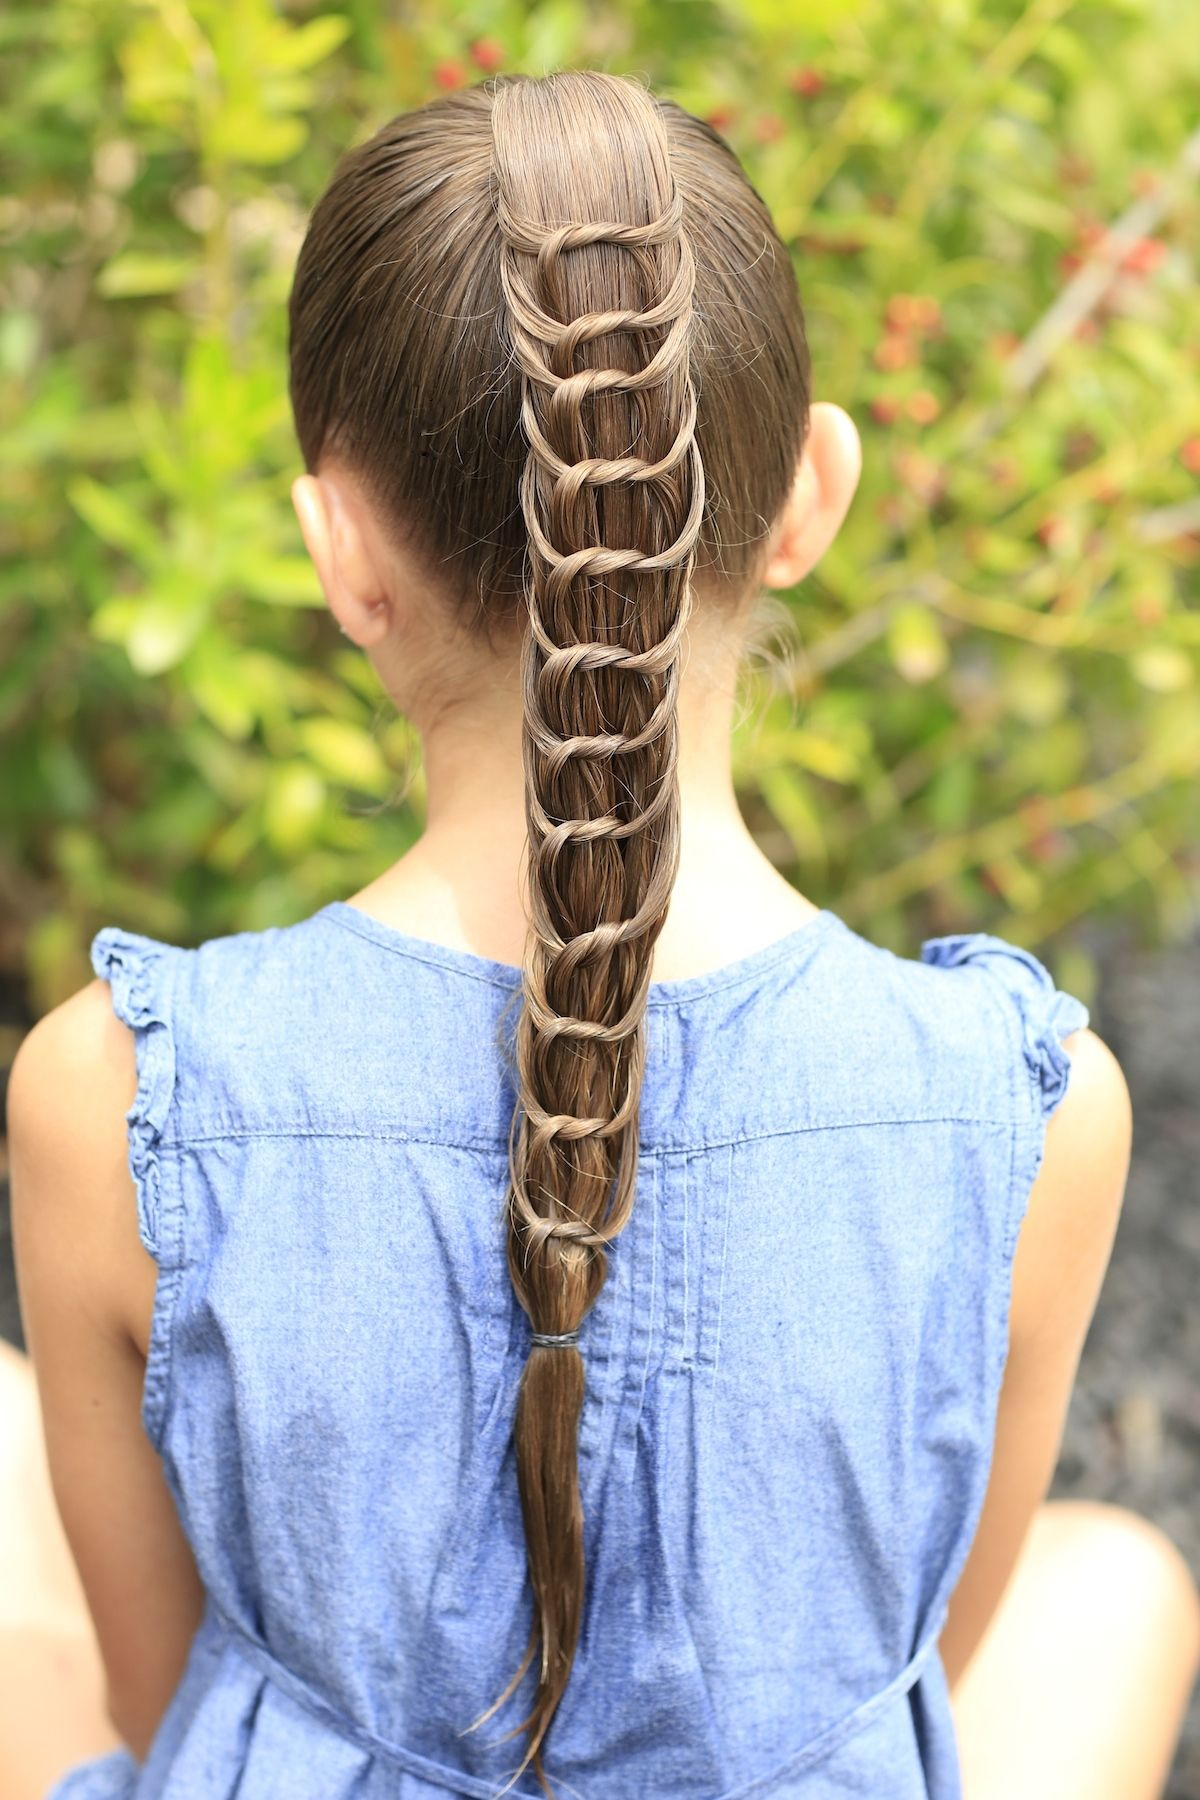 The knotted ponytail and more hairstyles from cutegirlshairstyles